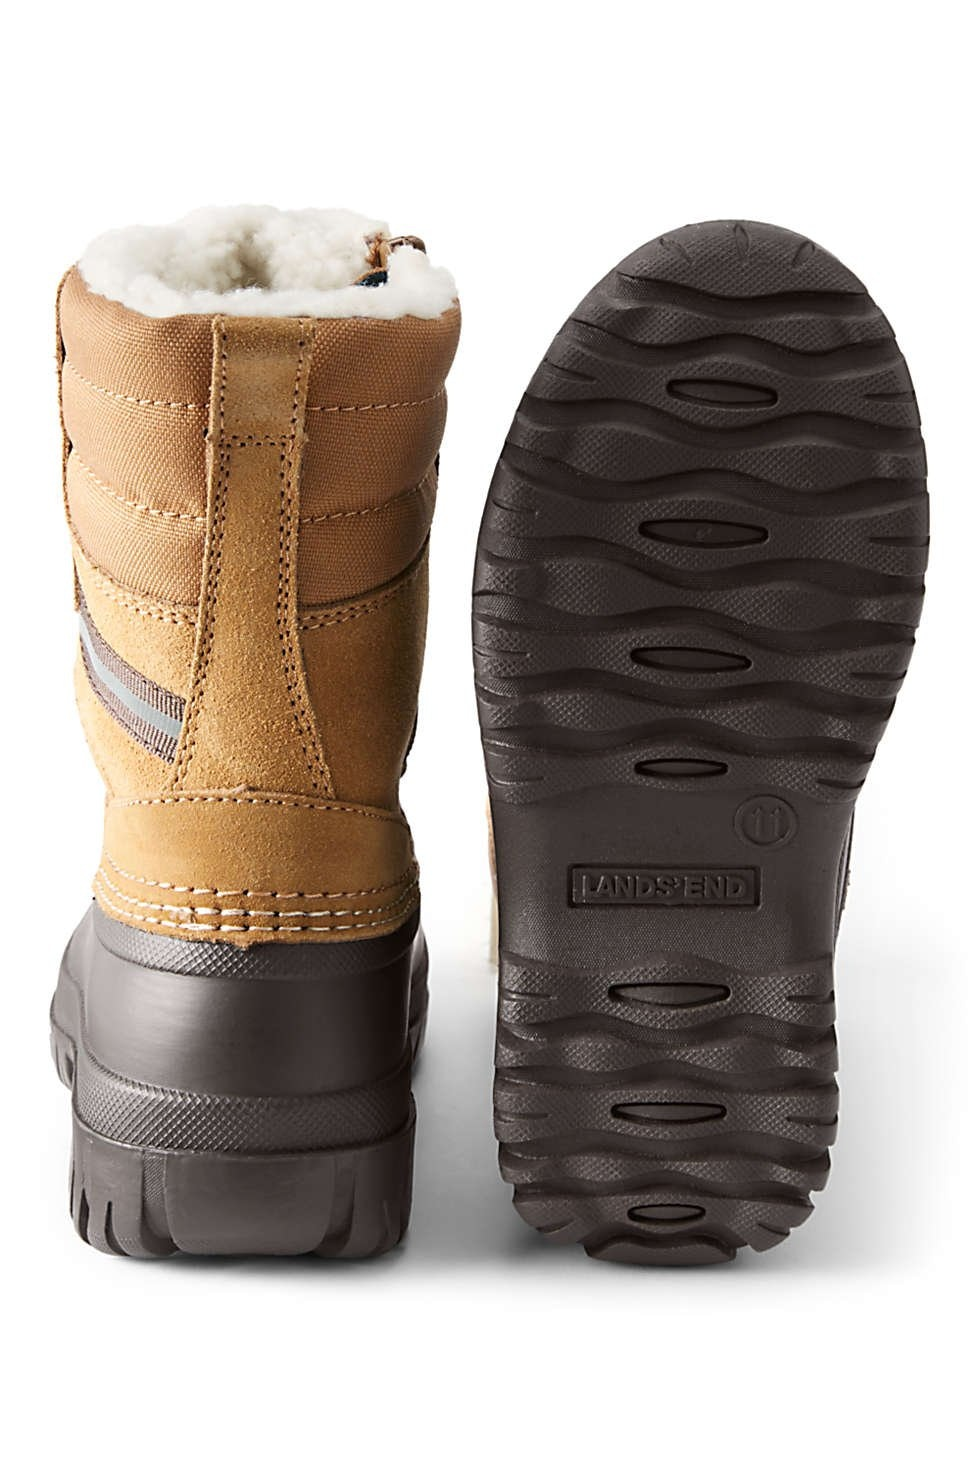 Lands End Kids Expedition Insulated Winter Snow Boots